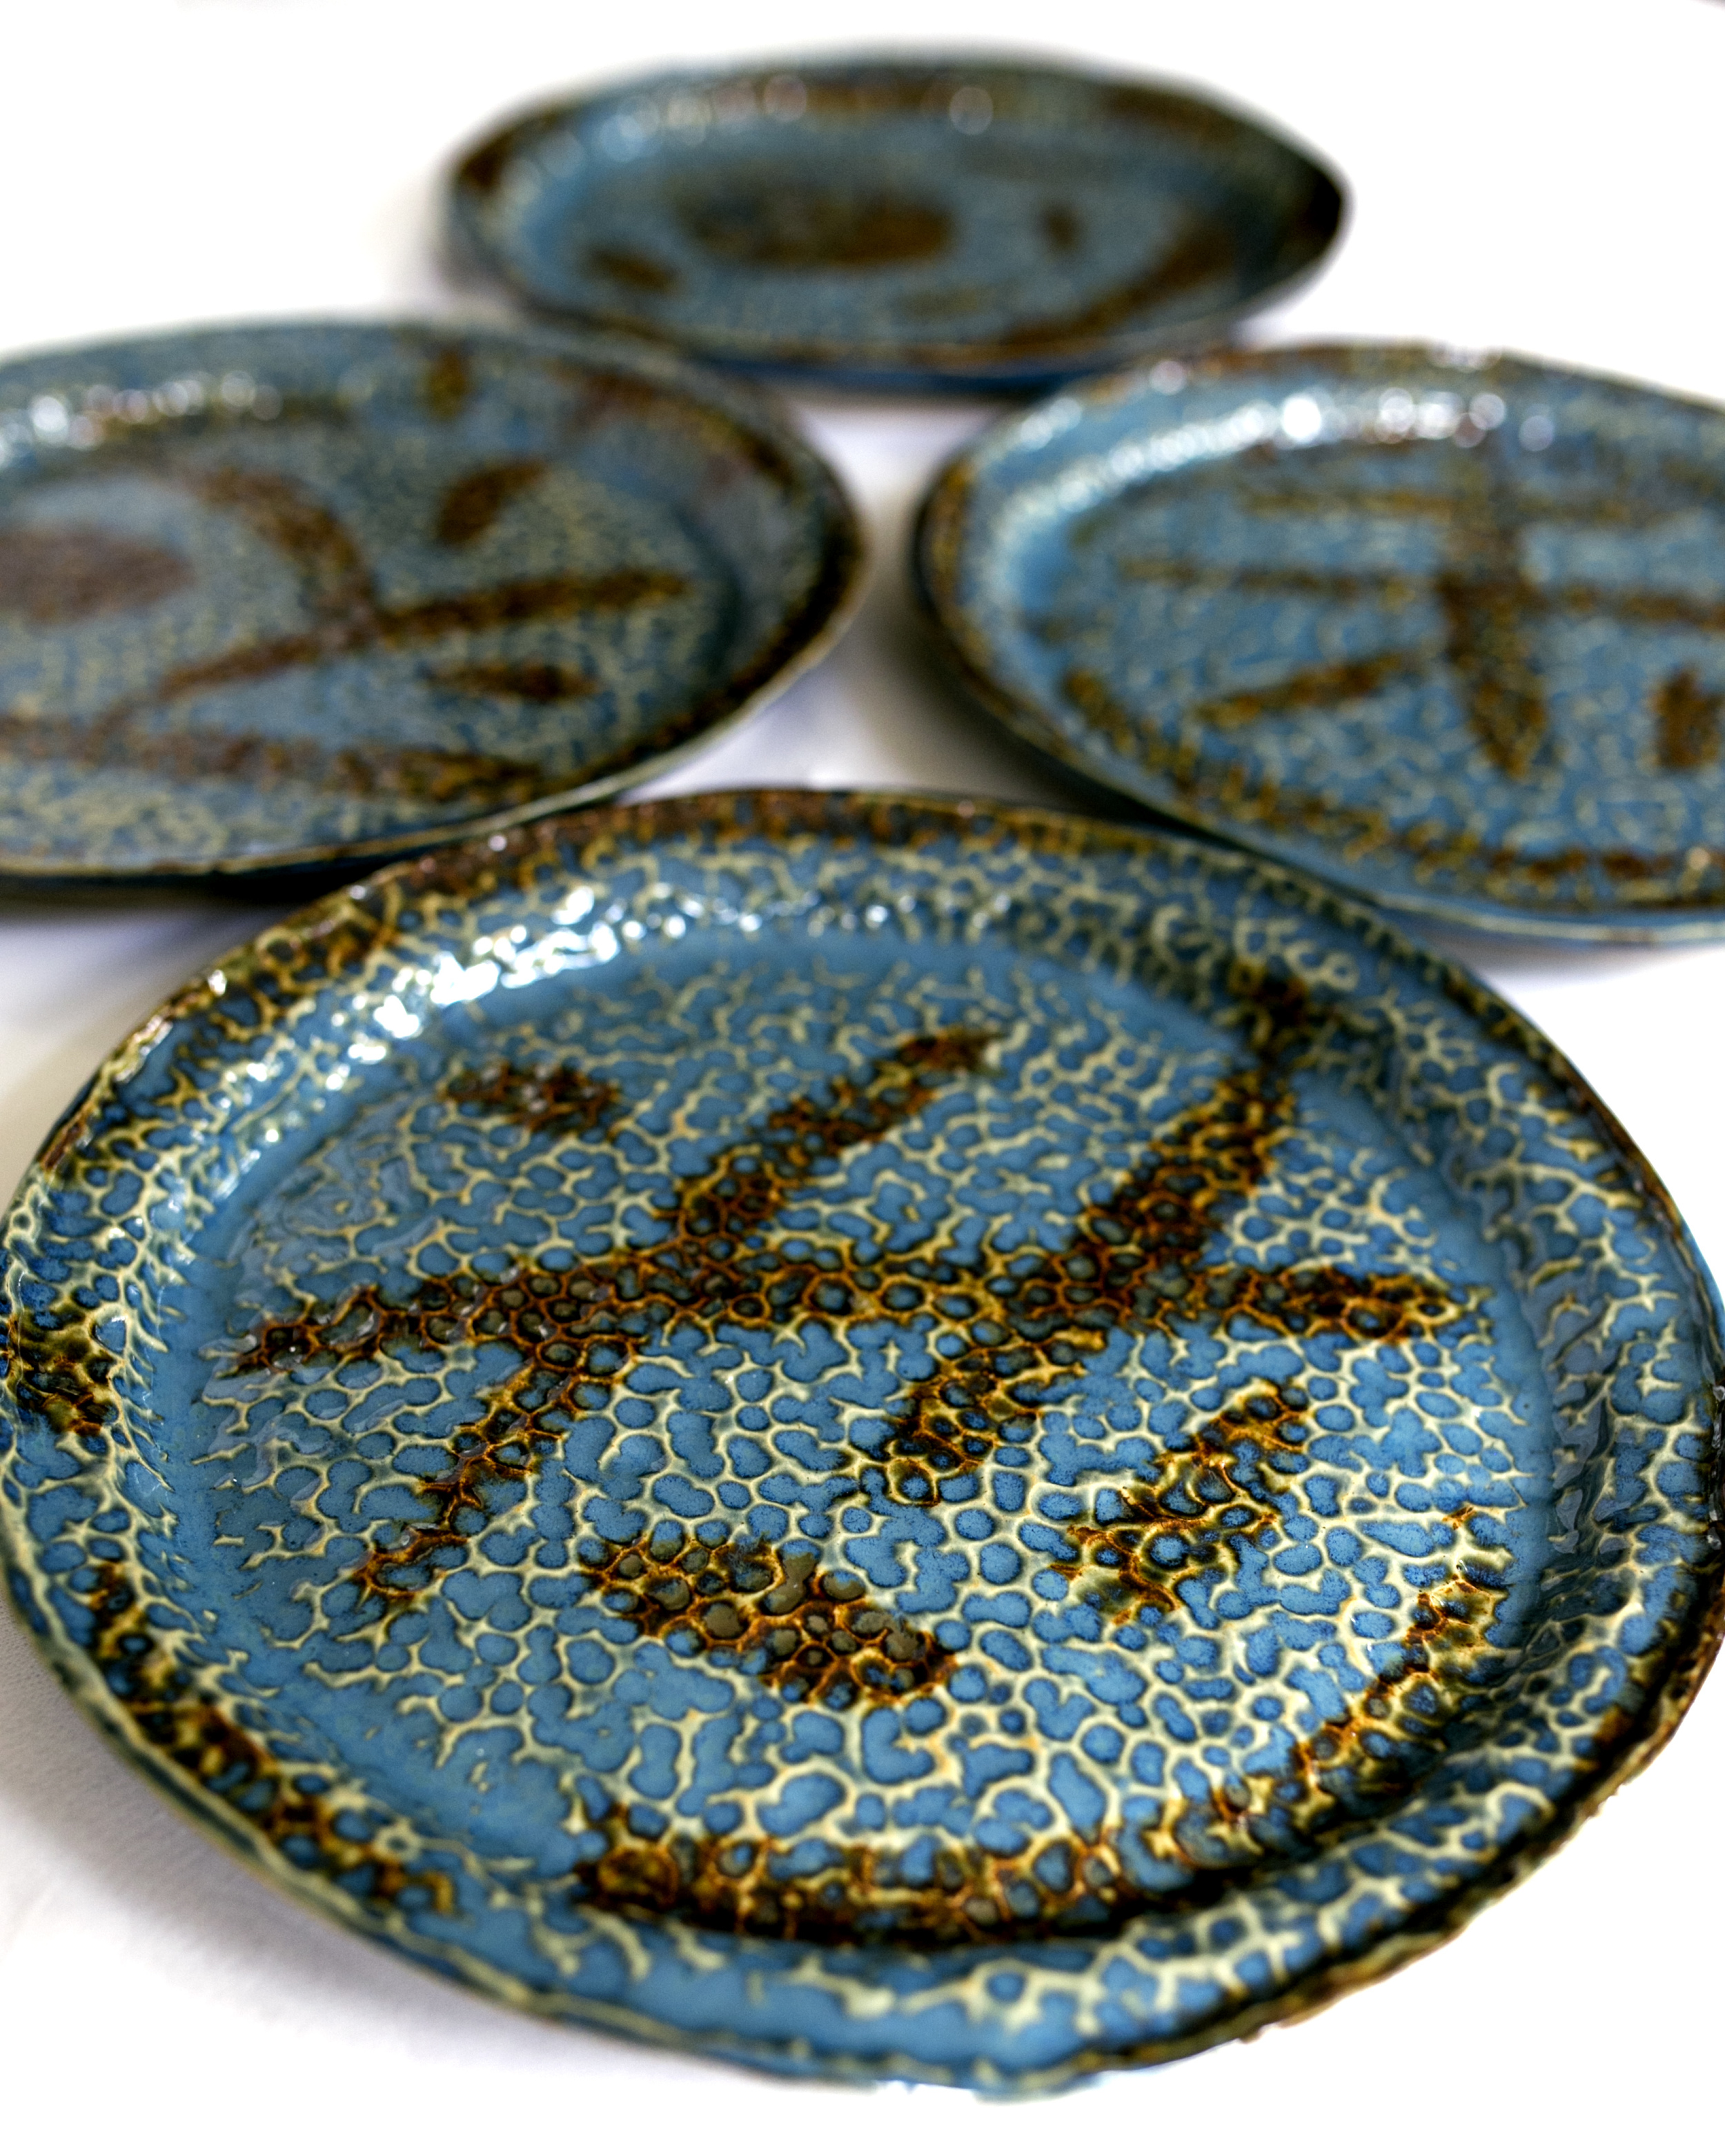 Renee Ricciardi Plates Ceramics Boston Pottery.jpg